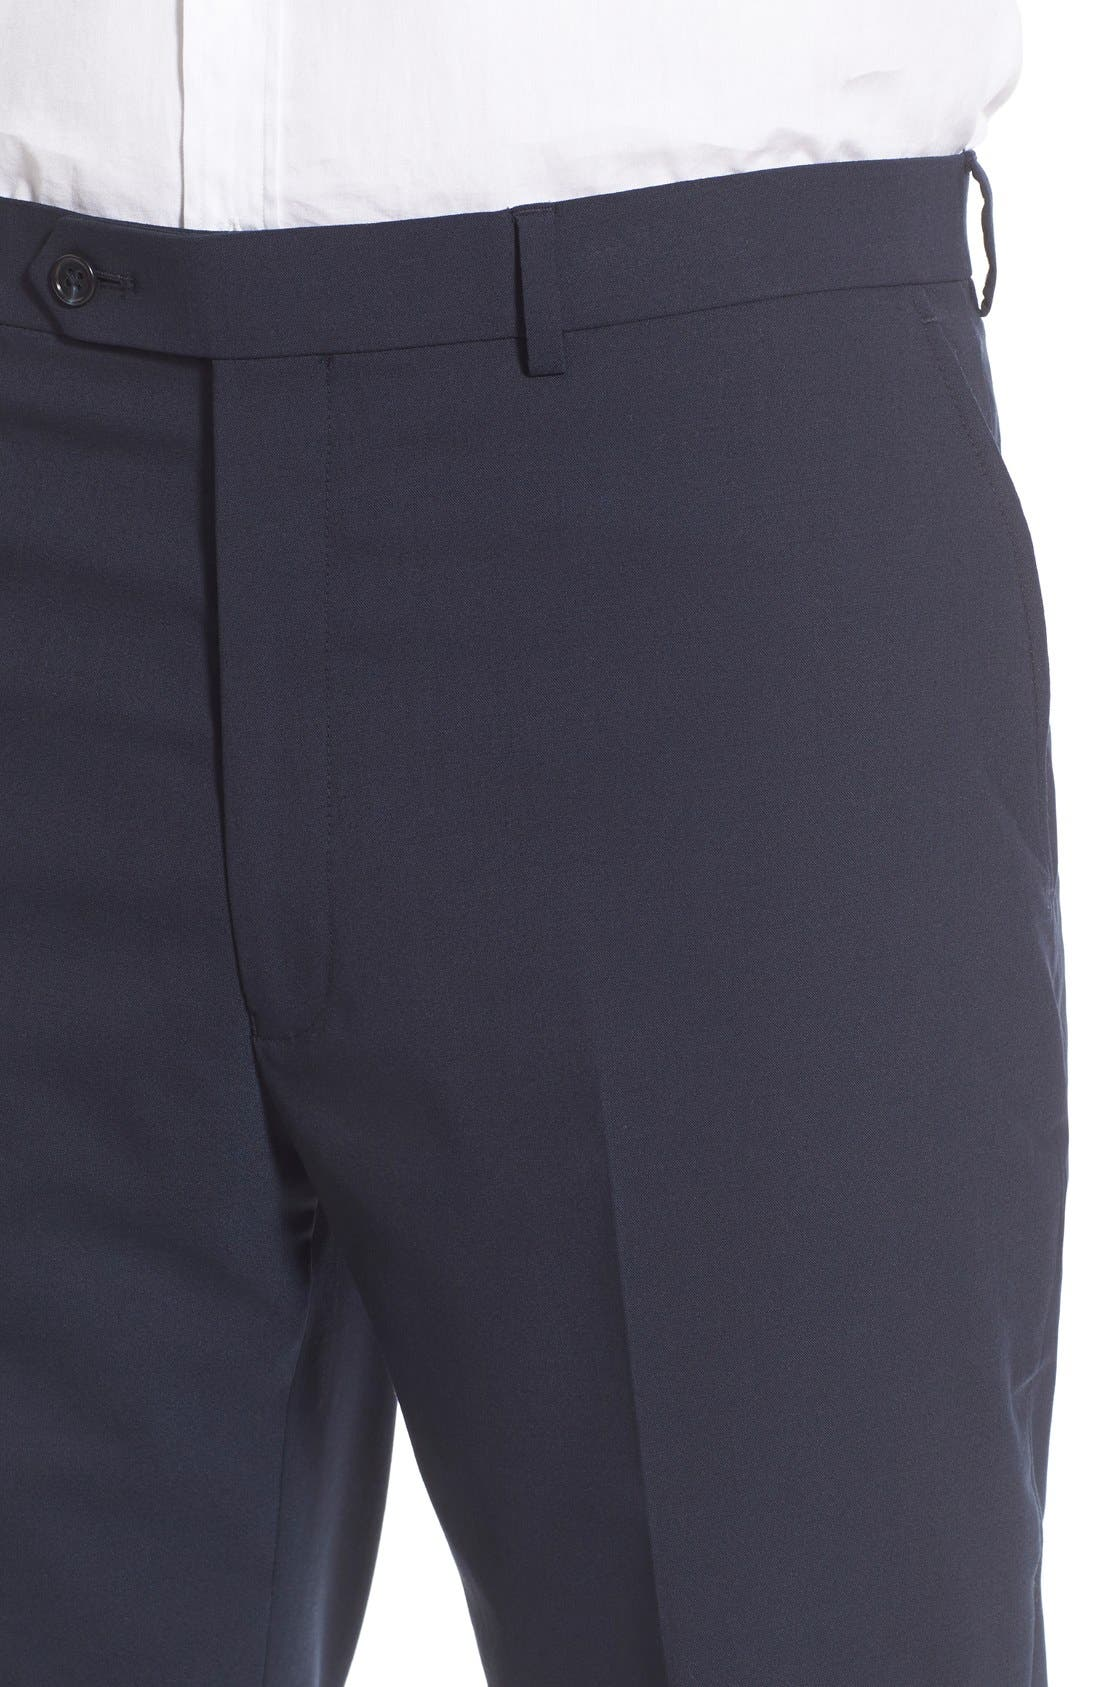 Flat Front Solid Stretch Wool Trousers,                             Alternate thumbnail 4, color,                             Navy Solid